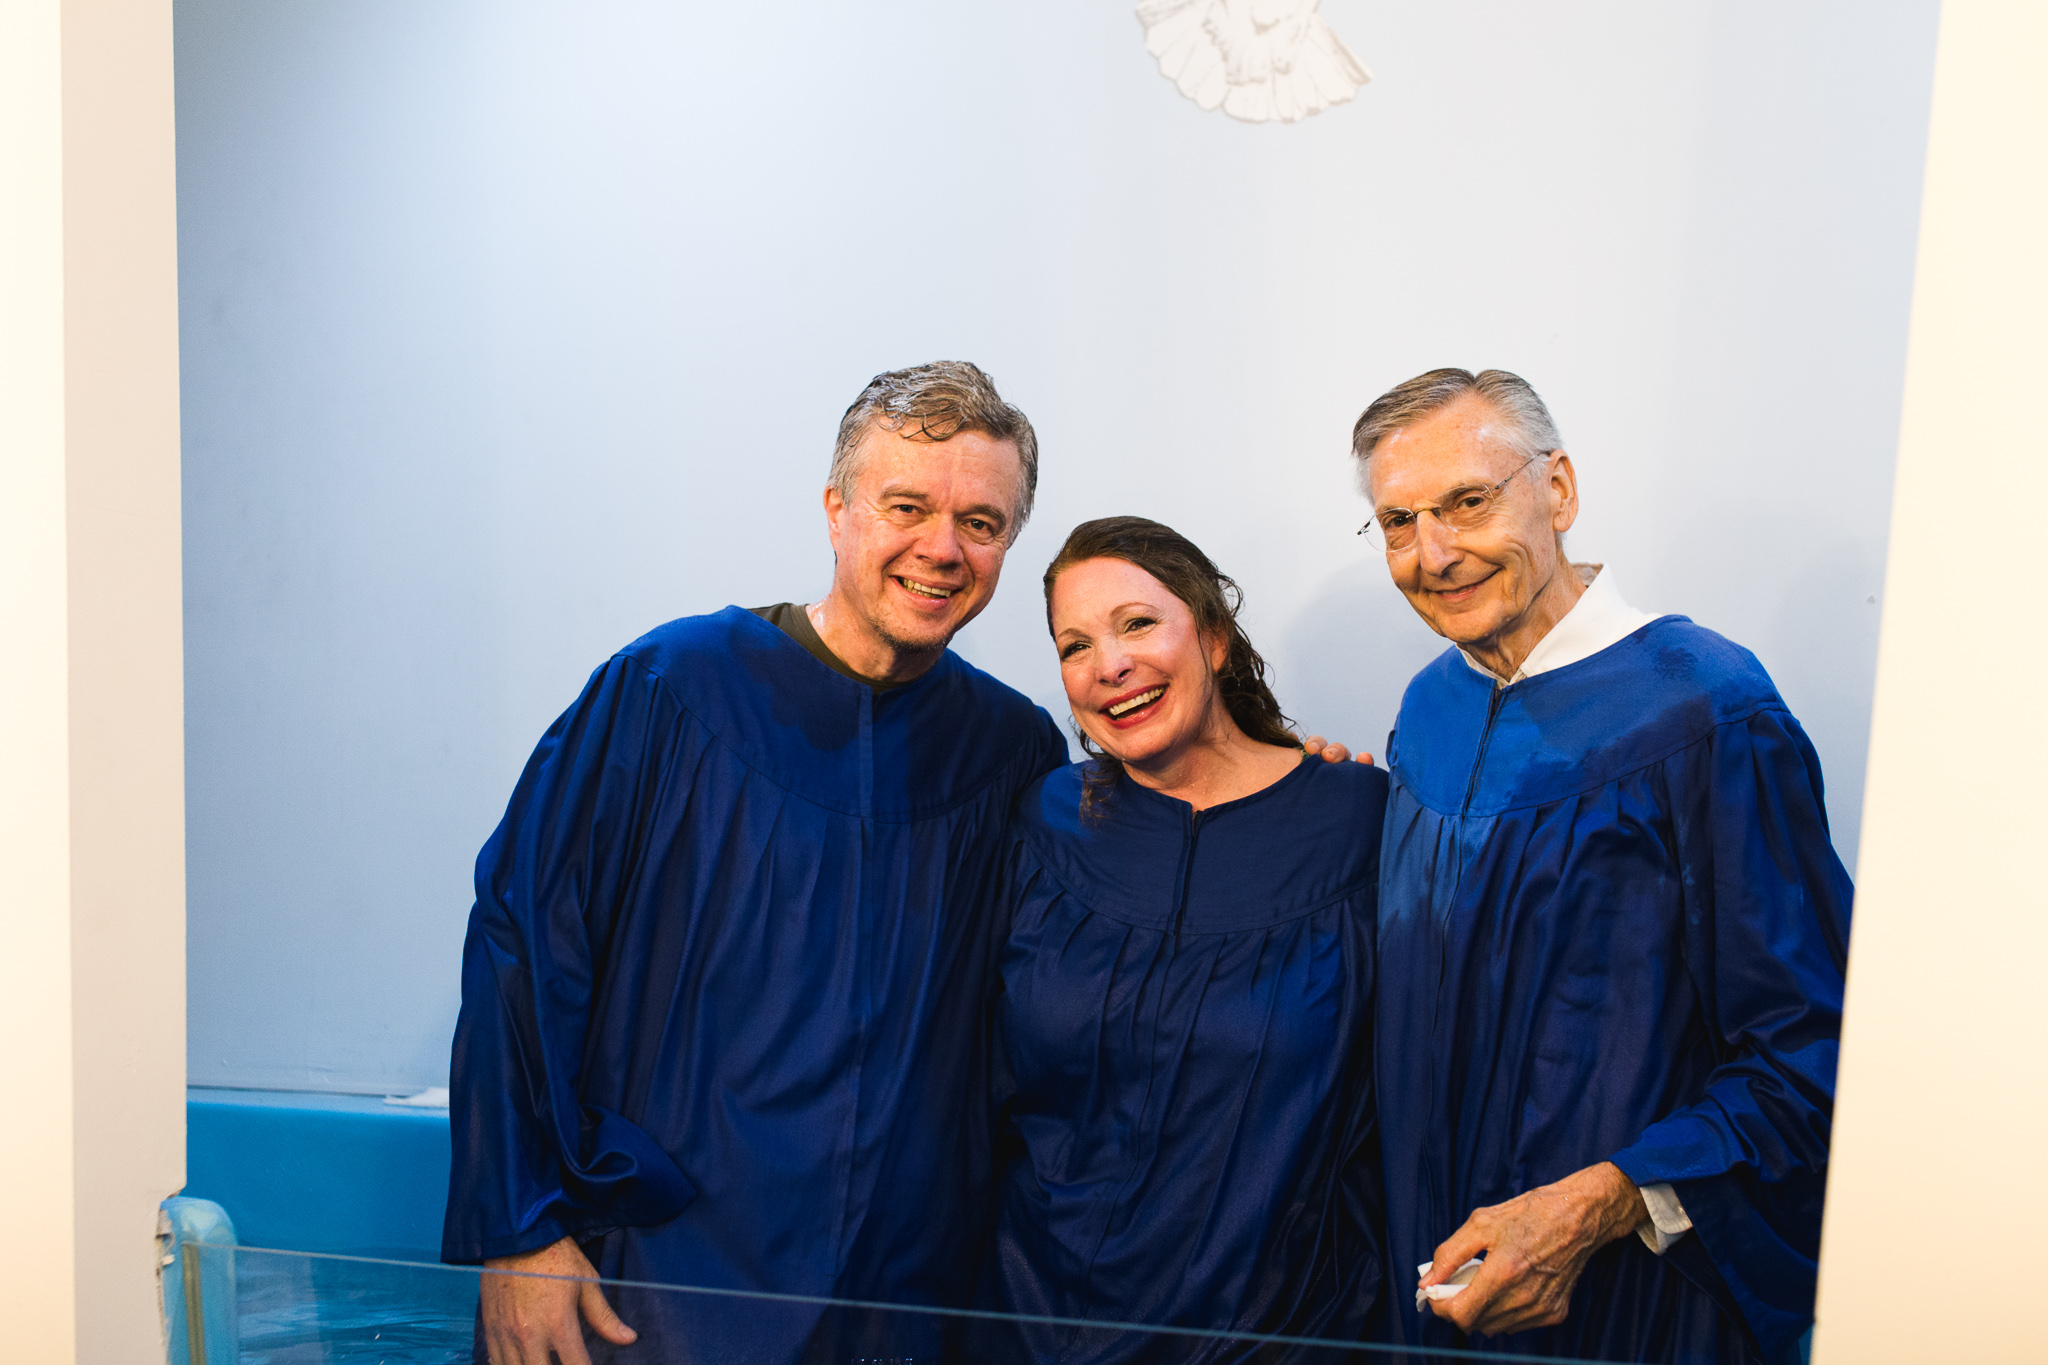 Hayes and Paige Parnell smile alongside Pastor Edward Skoretz after their baptism at Summerville Seventh-day Adventist Church in Summerville, Georgia.